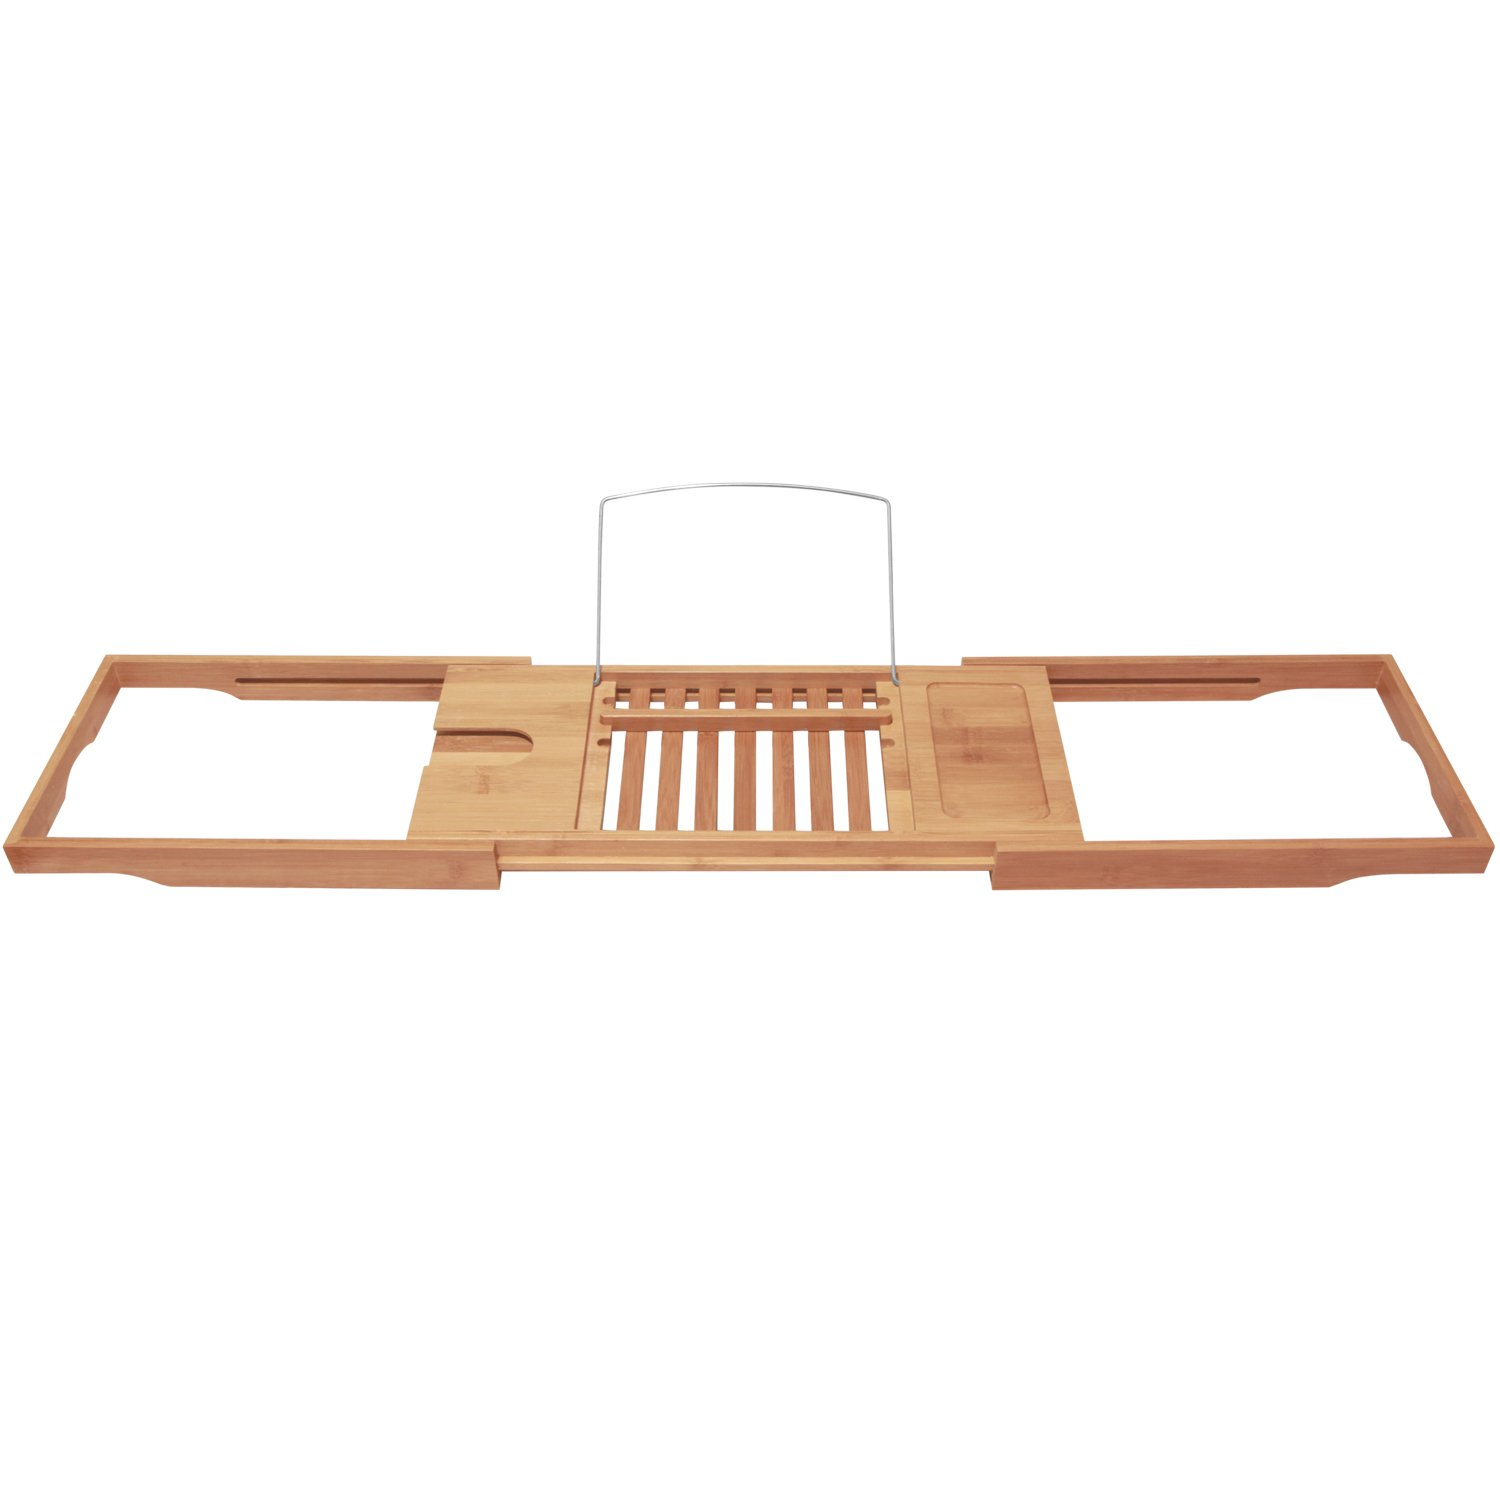 Bamboo Bathtub Caddy with Extending Sides and Adjustable Book Holder by ToiletTree Products